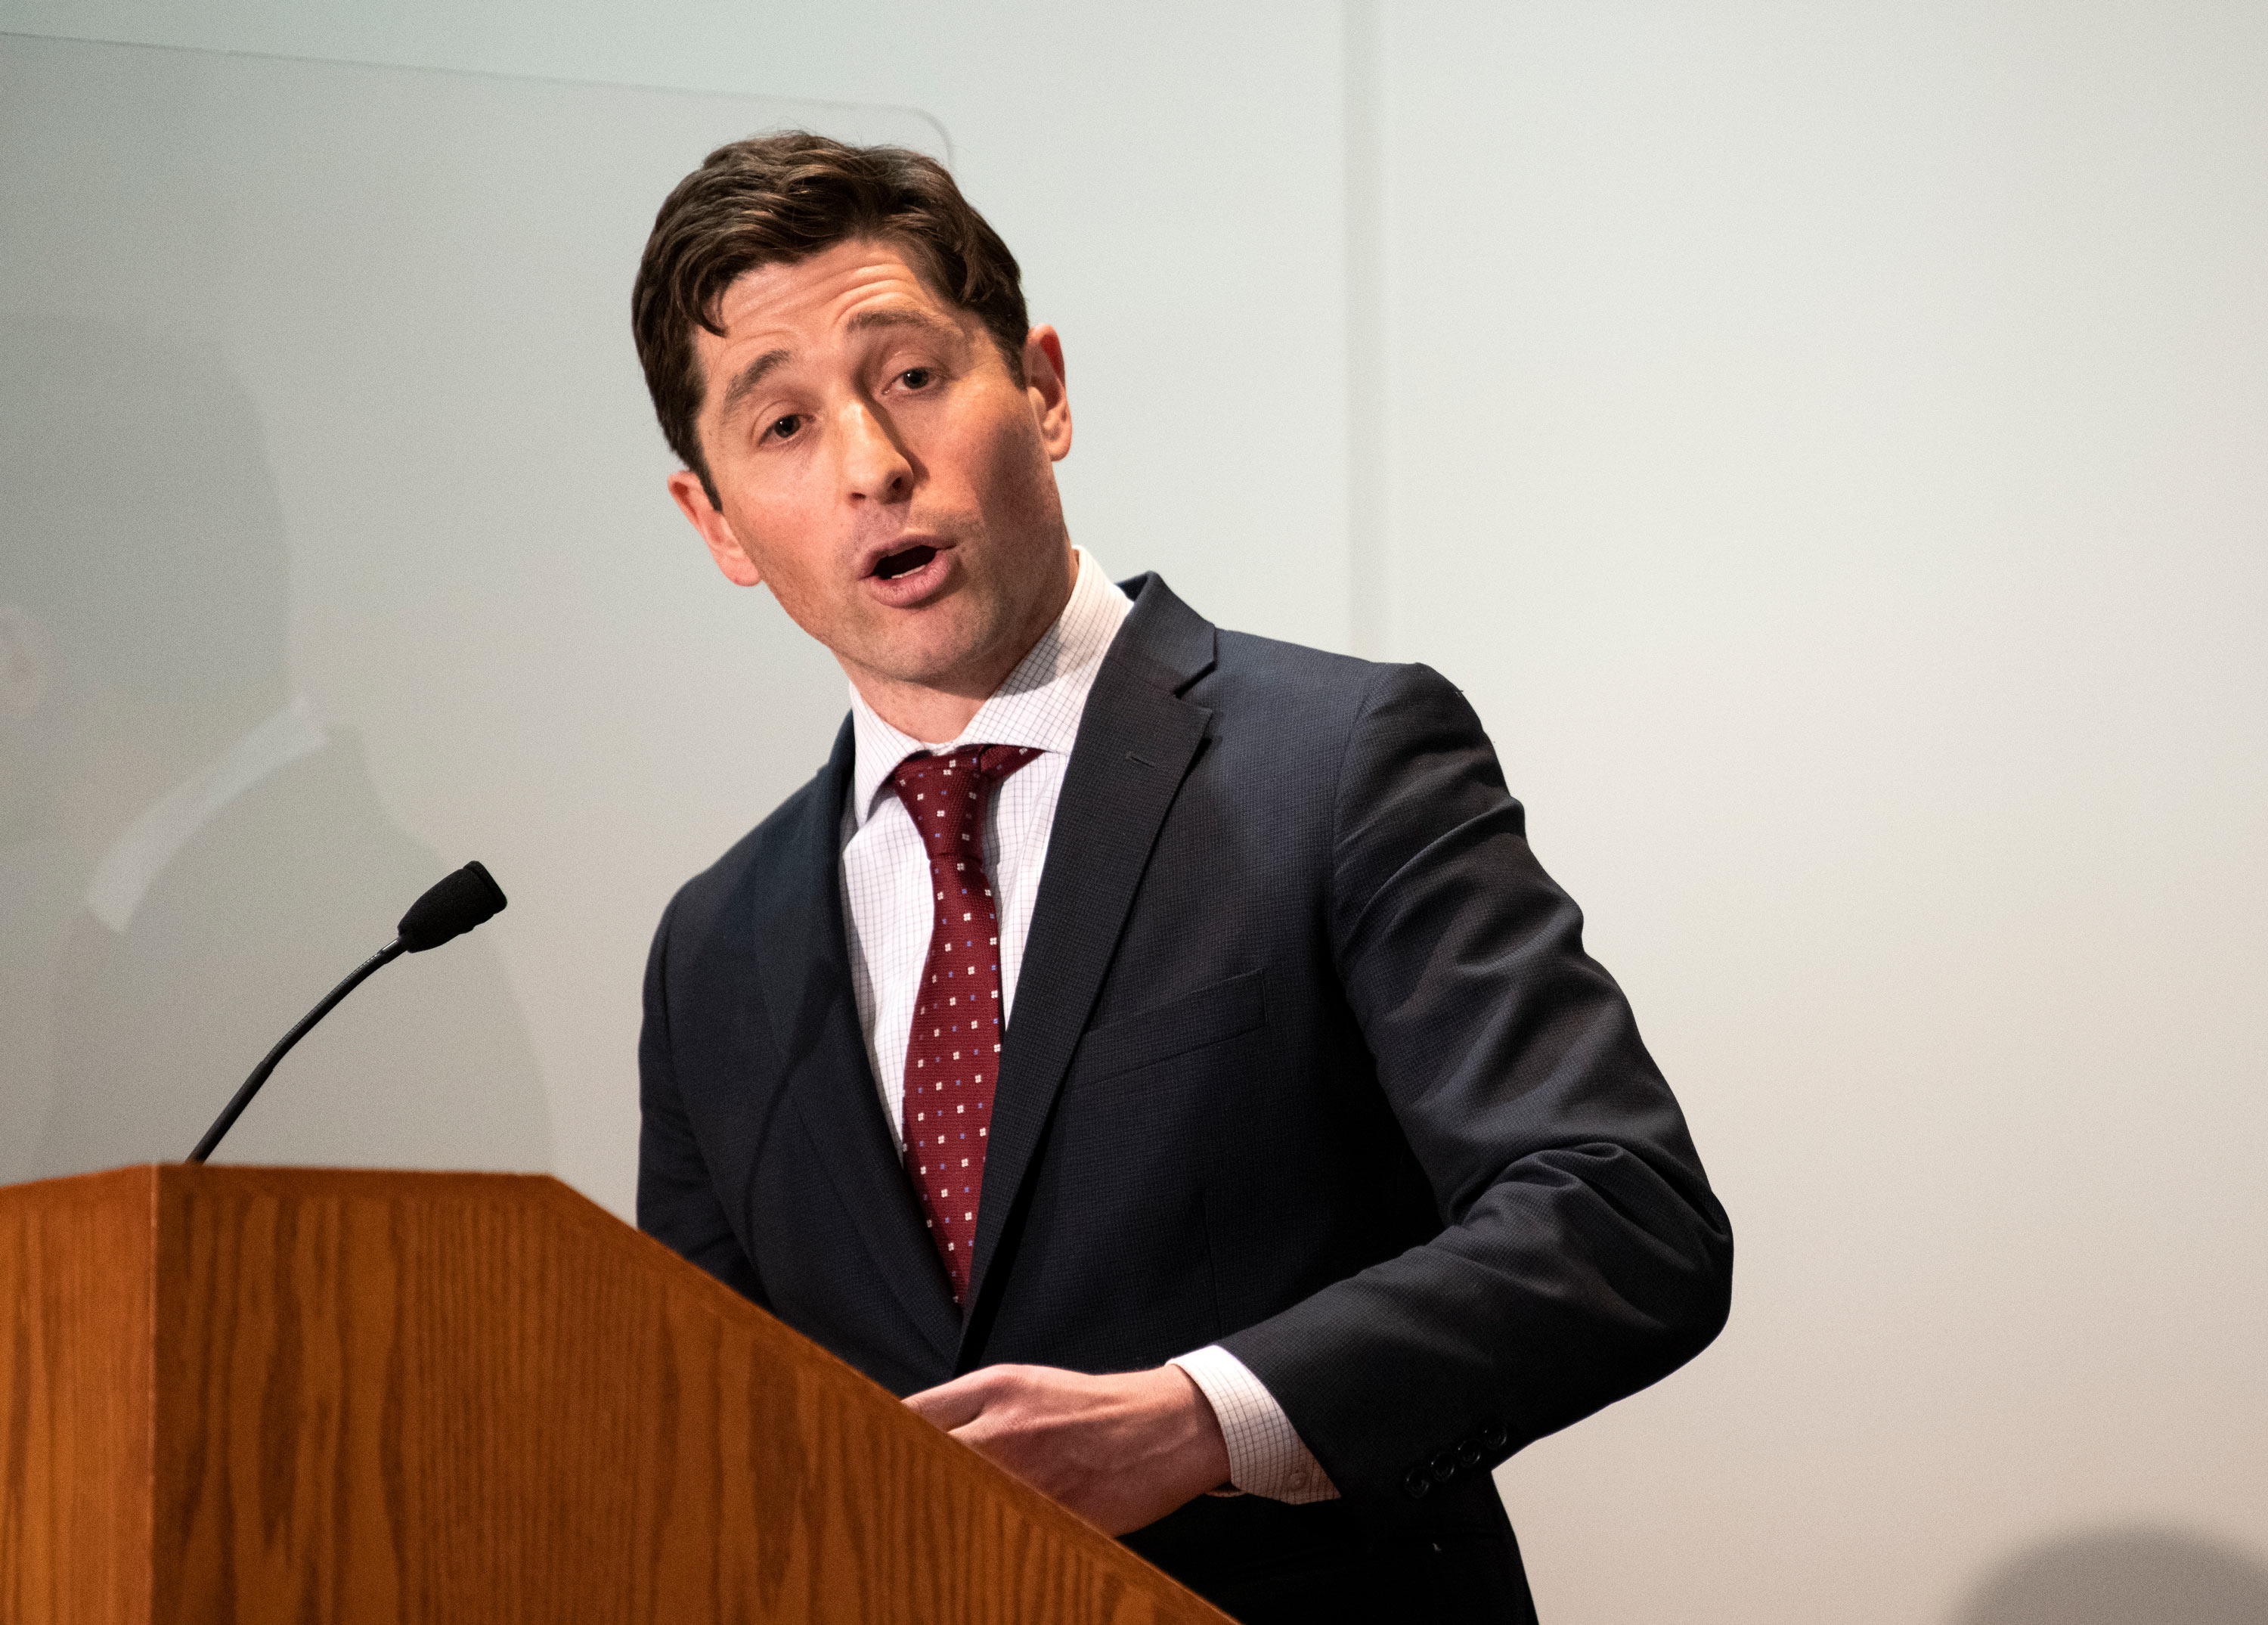 Minneapolis Mayor Jacob Frey speaks at a press conference on April 19 in St. Paul, Minnesota.